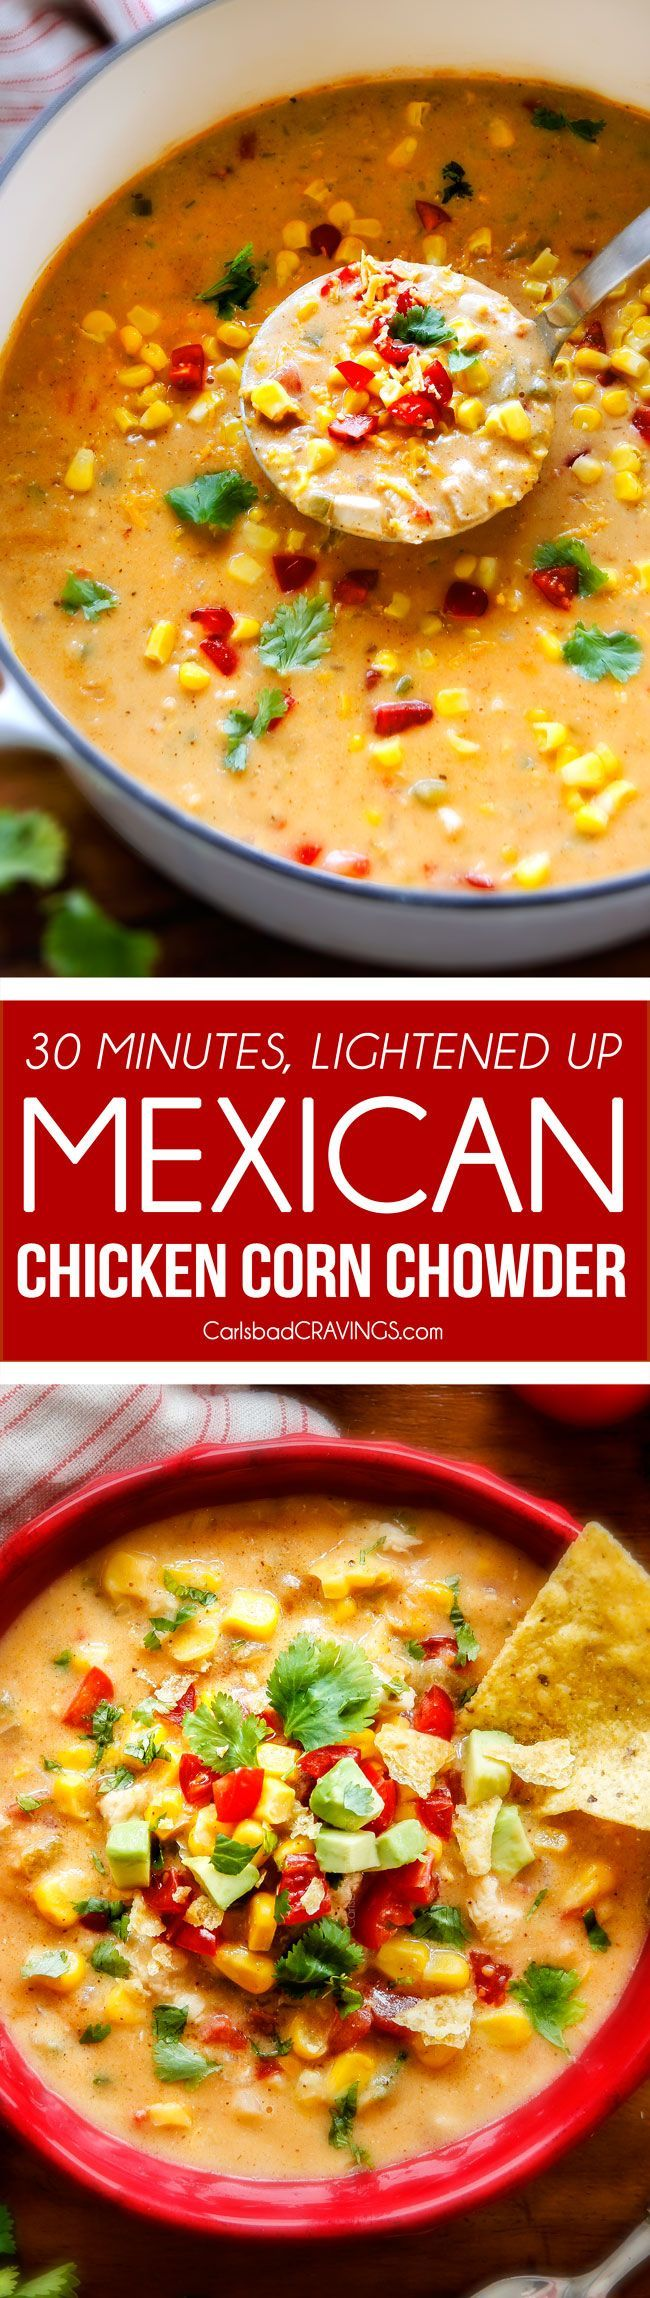 30 Minute LIGHTENED UP Mexican Chicken Corn Chowder is one of my family's favorite soups ever! Its cheesy, creamy (without any heavy cream!), comforting and the layers of flavors are out of this world!  via @carlsbadcraving